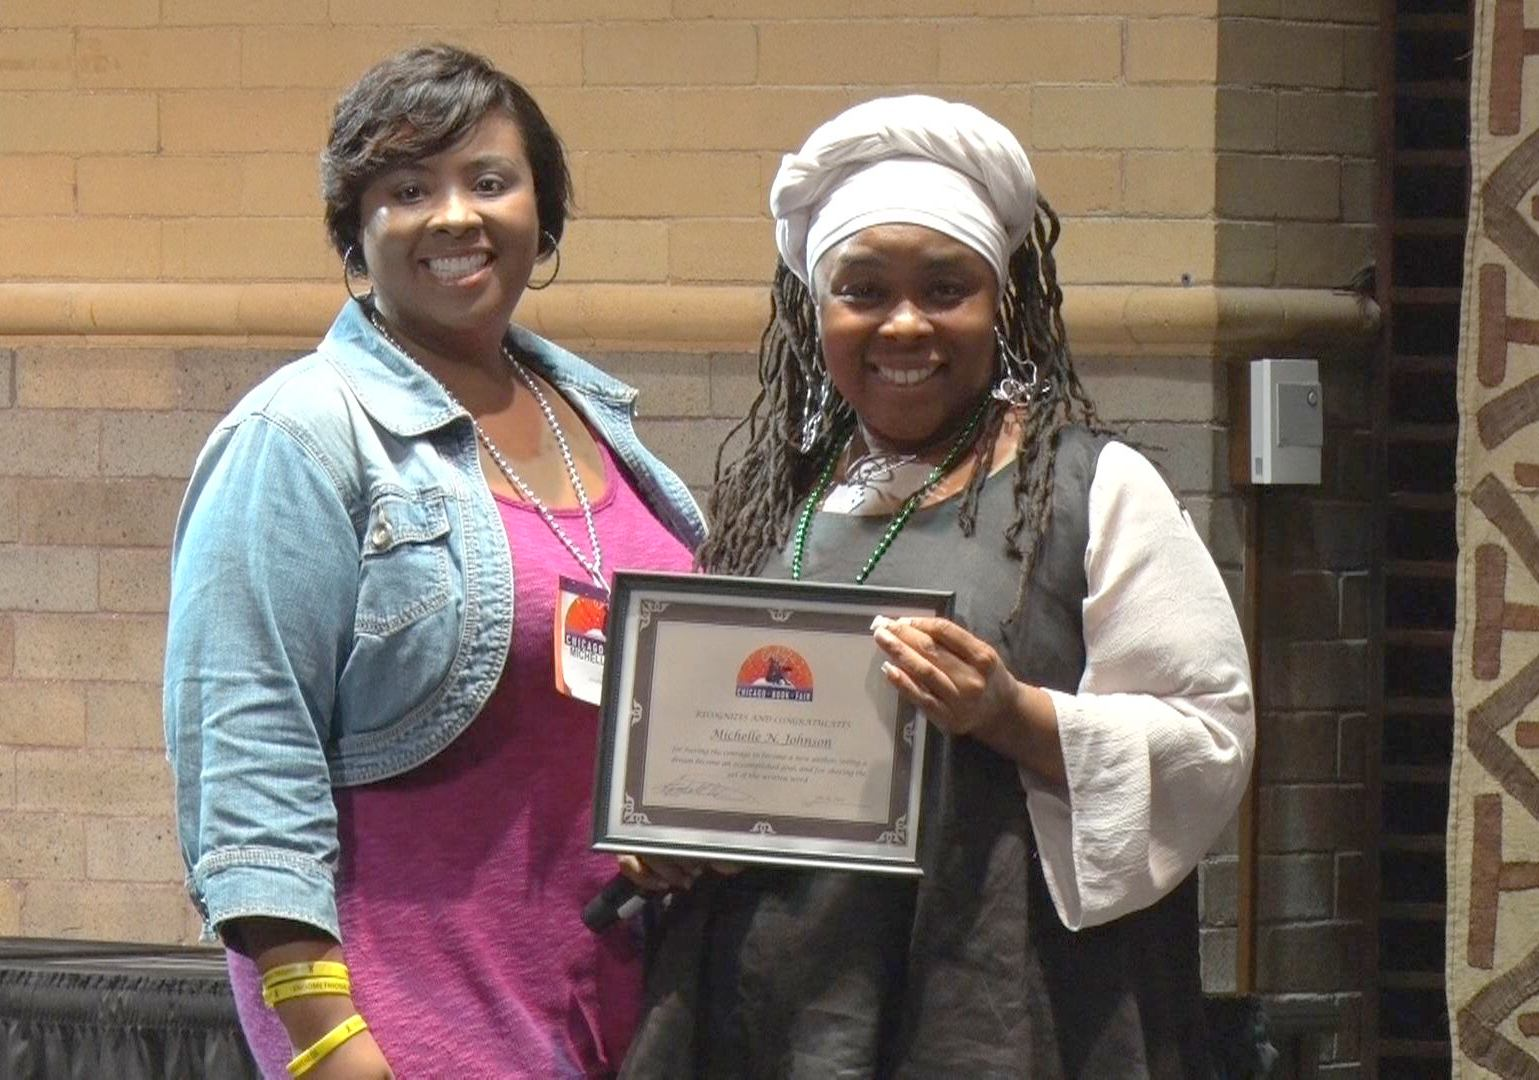 Michelle New Author Award